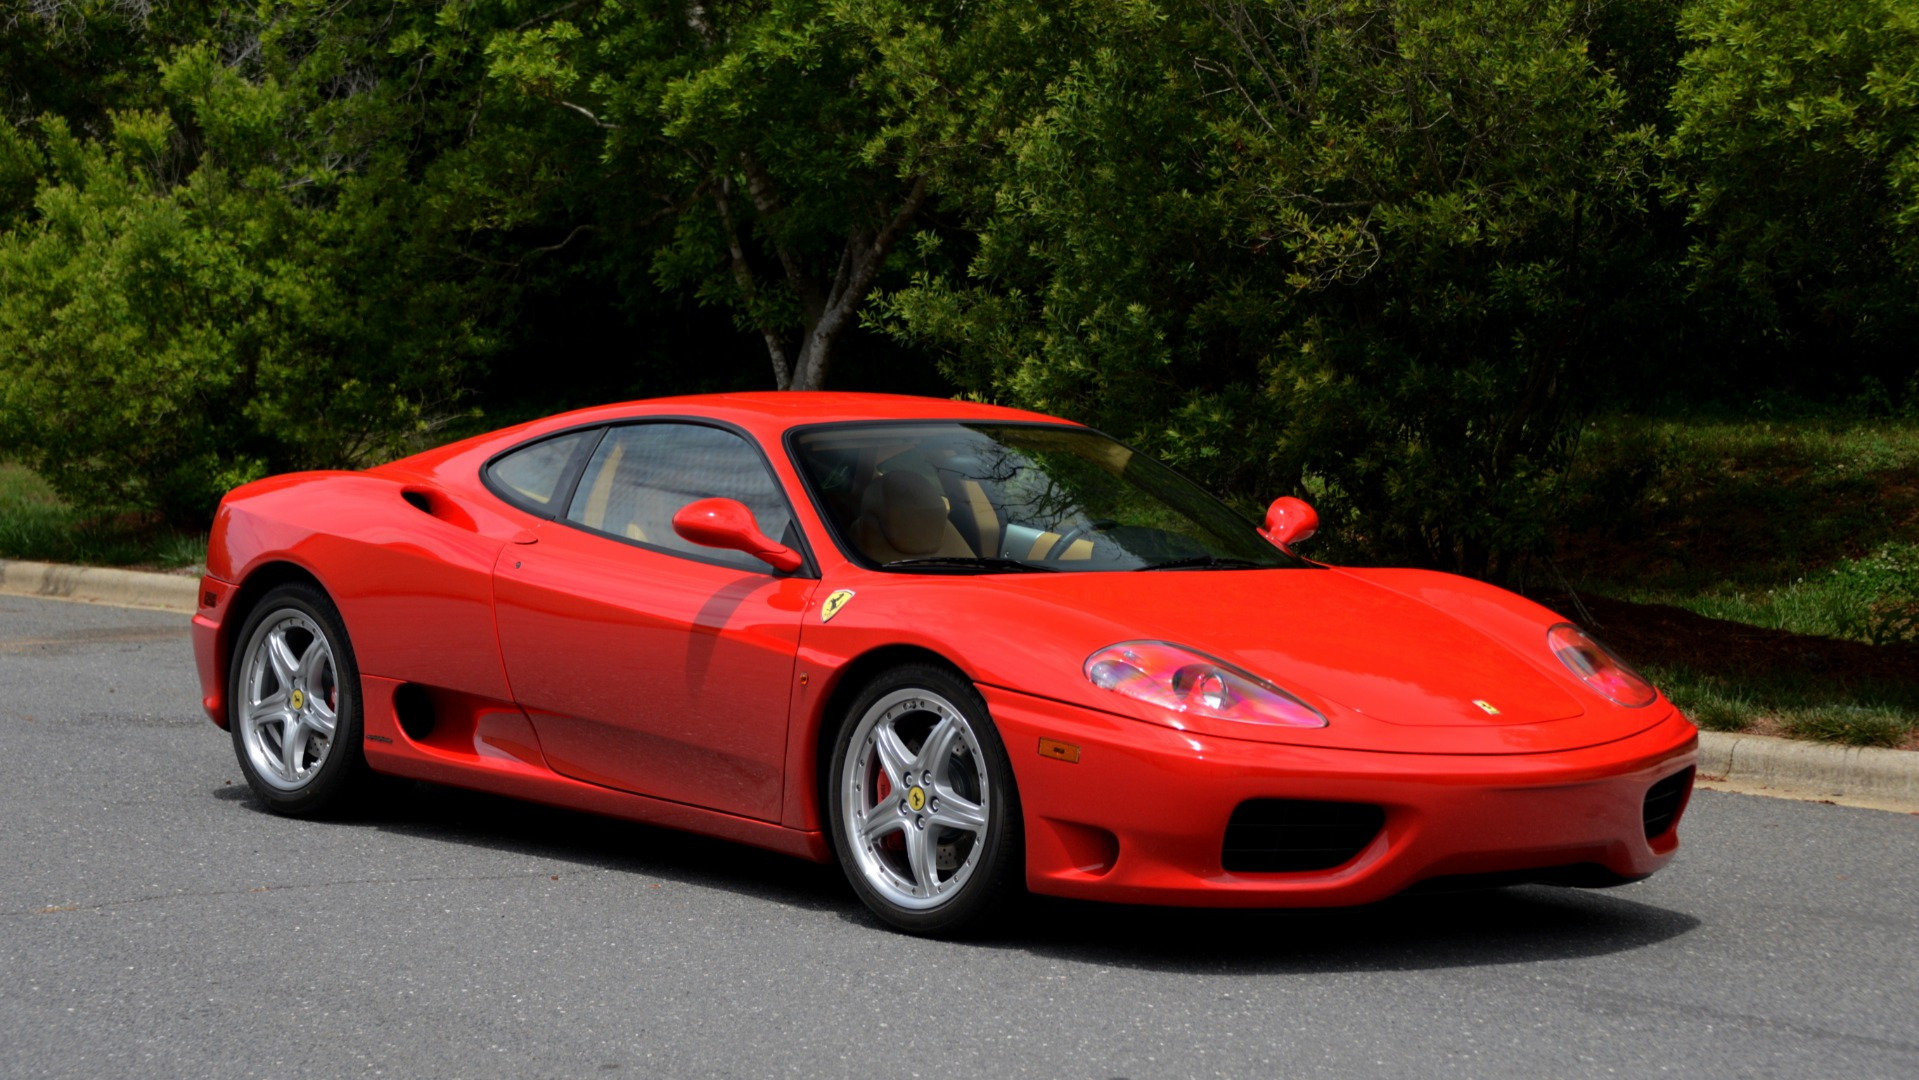 Used 2004 Ferrari 360 MODENA COUPE / GATED 6-SPD MANUAL / SUNROOF / LOW MILES for sale Sold at Formula Imports in Charlotte NC 28227 6